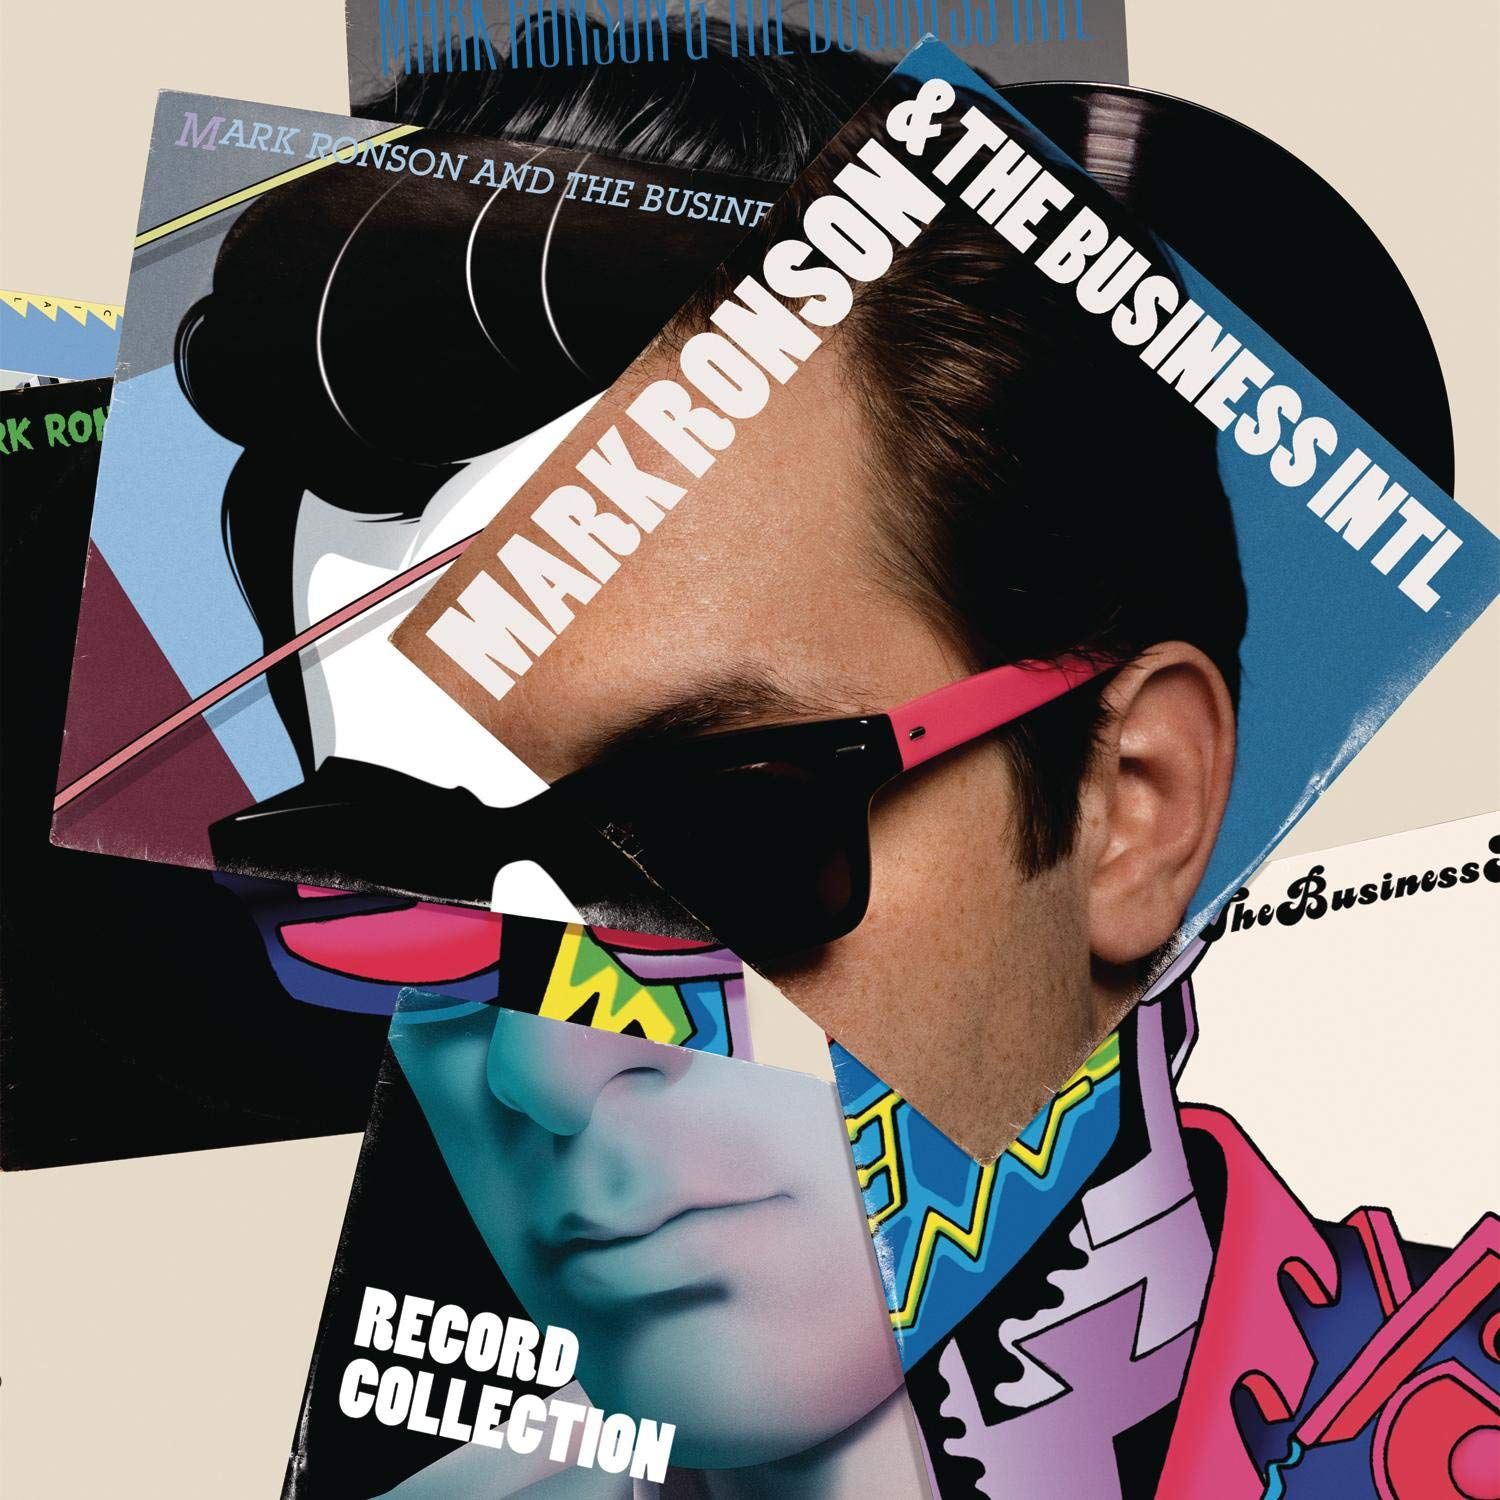 Mark Ronson & The Business Intl - Record Collection (2010) [FLAC] Download